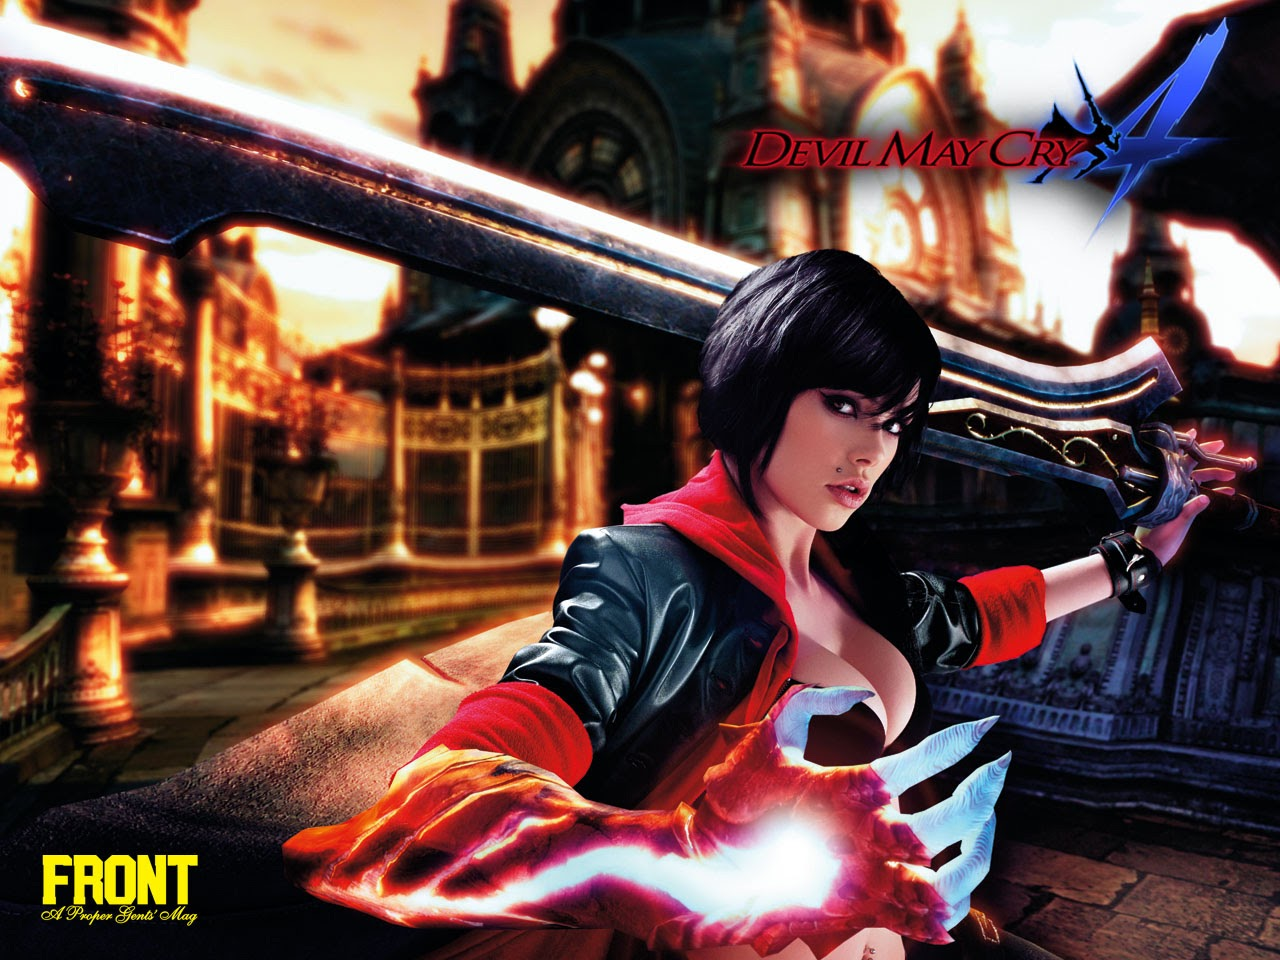 gamegod: devil may cry 4 wallpapers